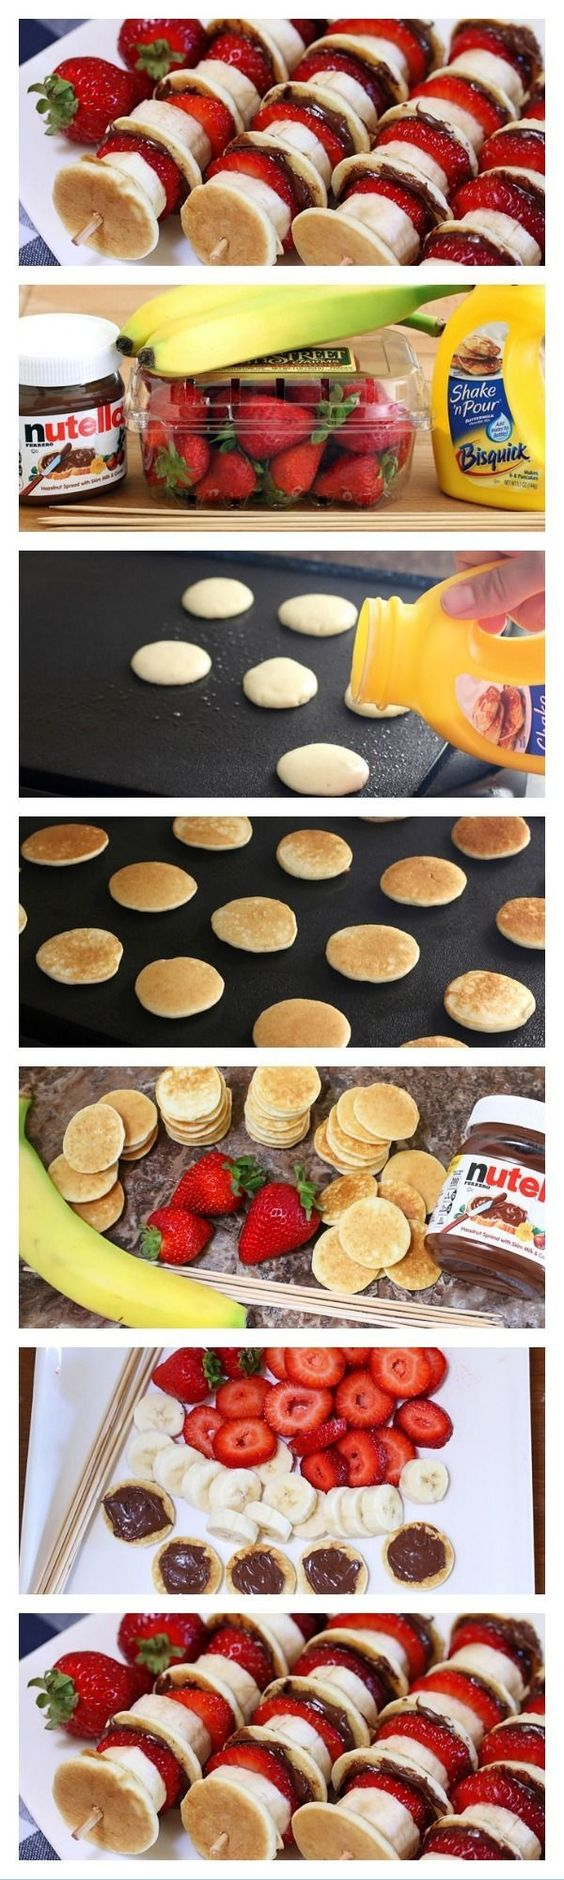 Pancake and fruit skewers